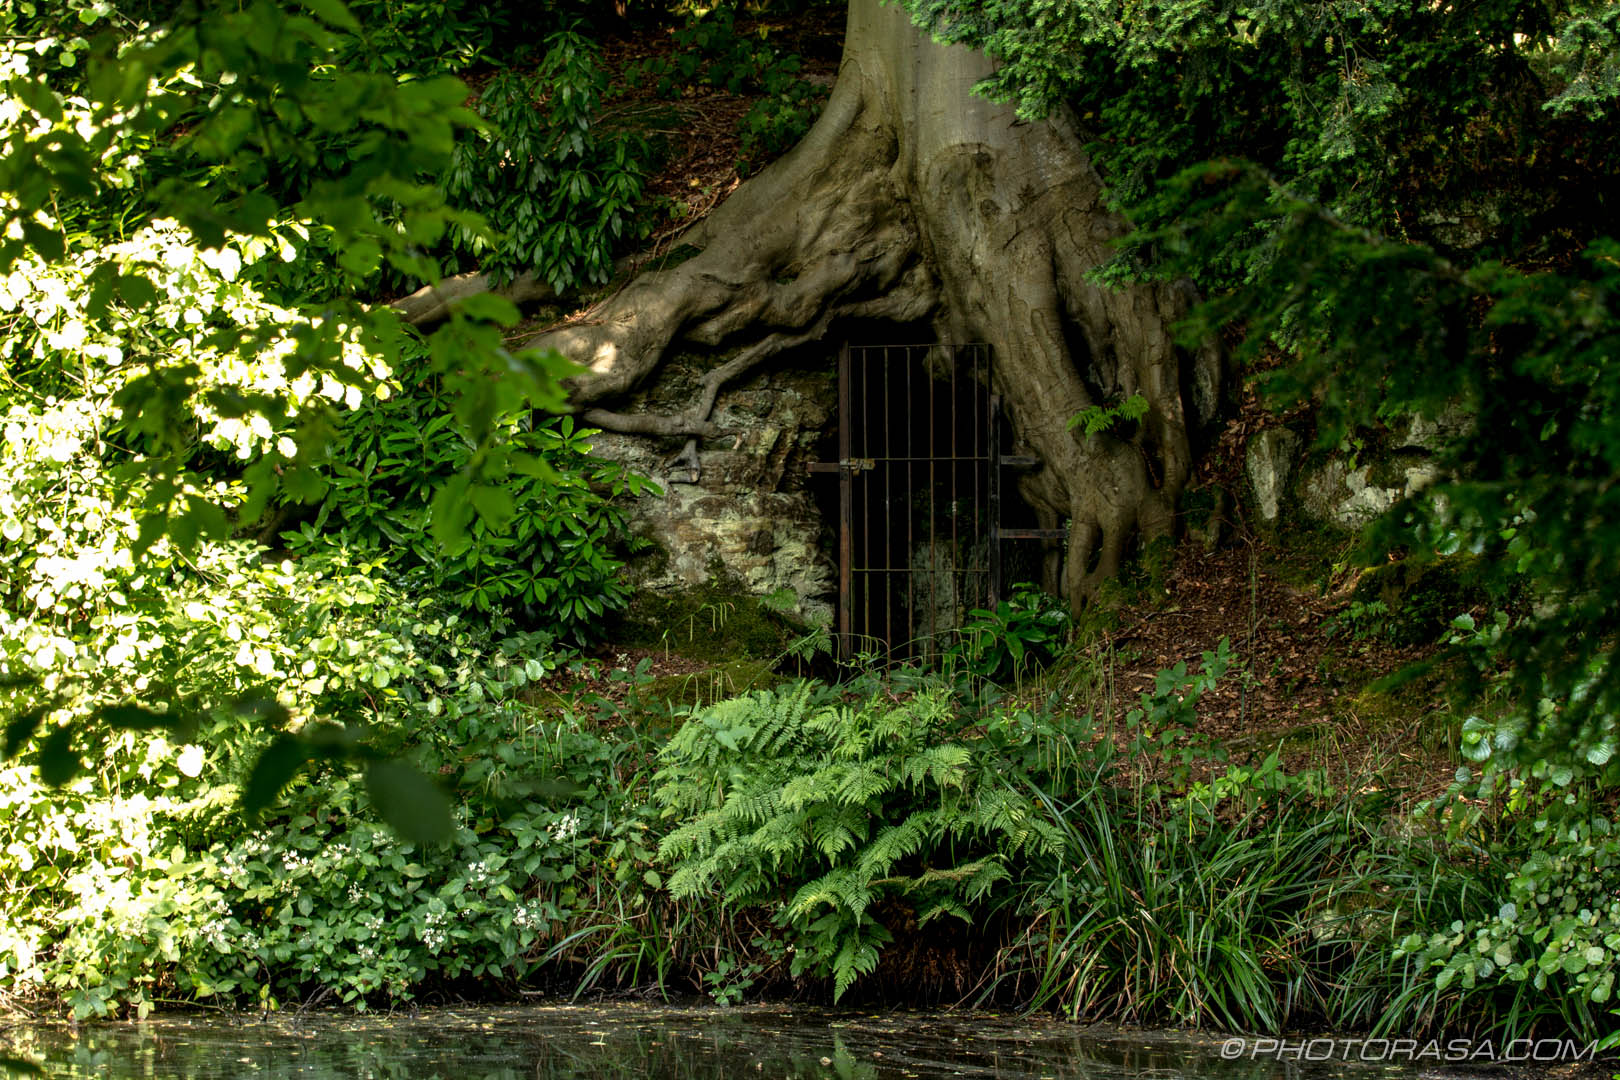 http://photorasa.com/chiddingstone-castle/hobbit-hole/